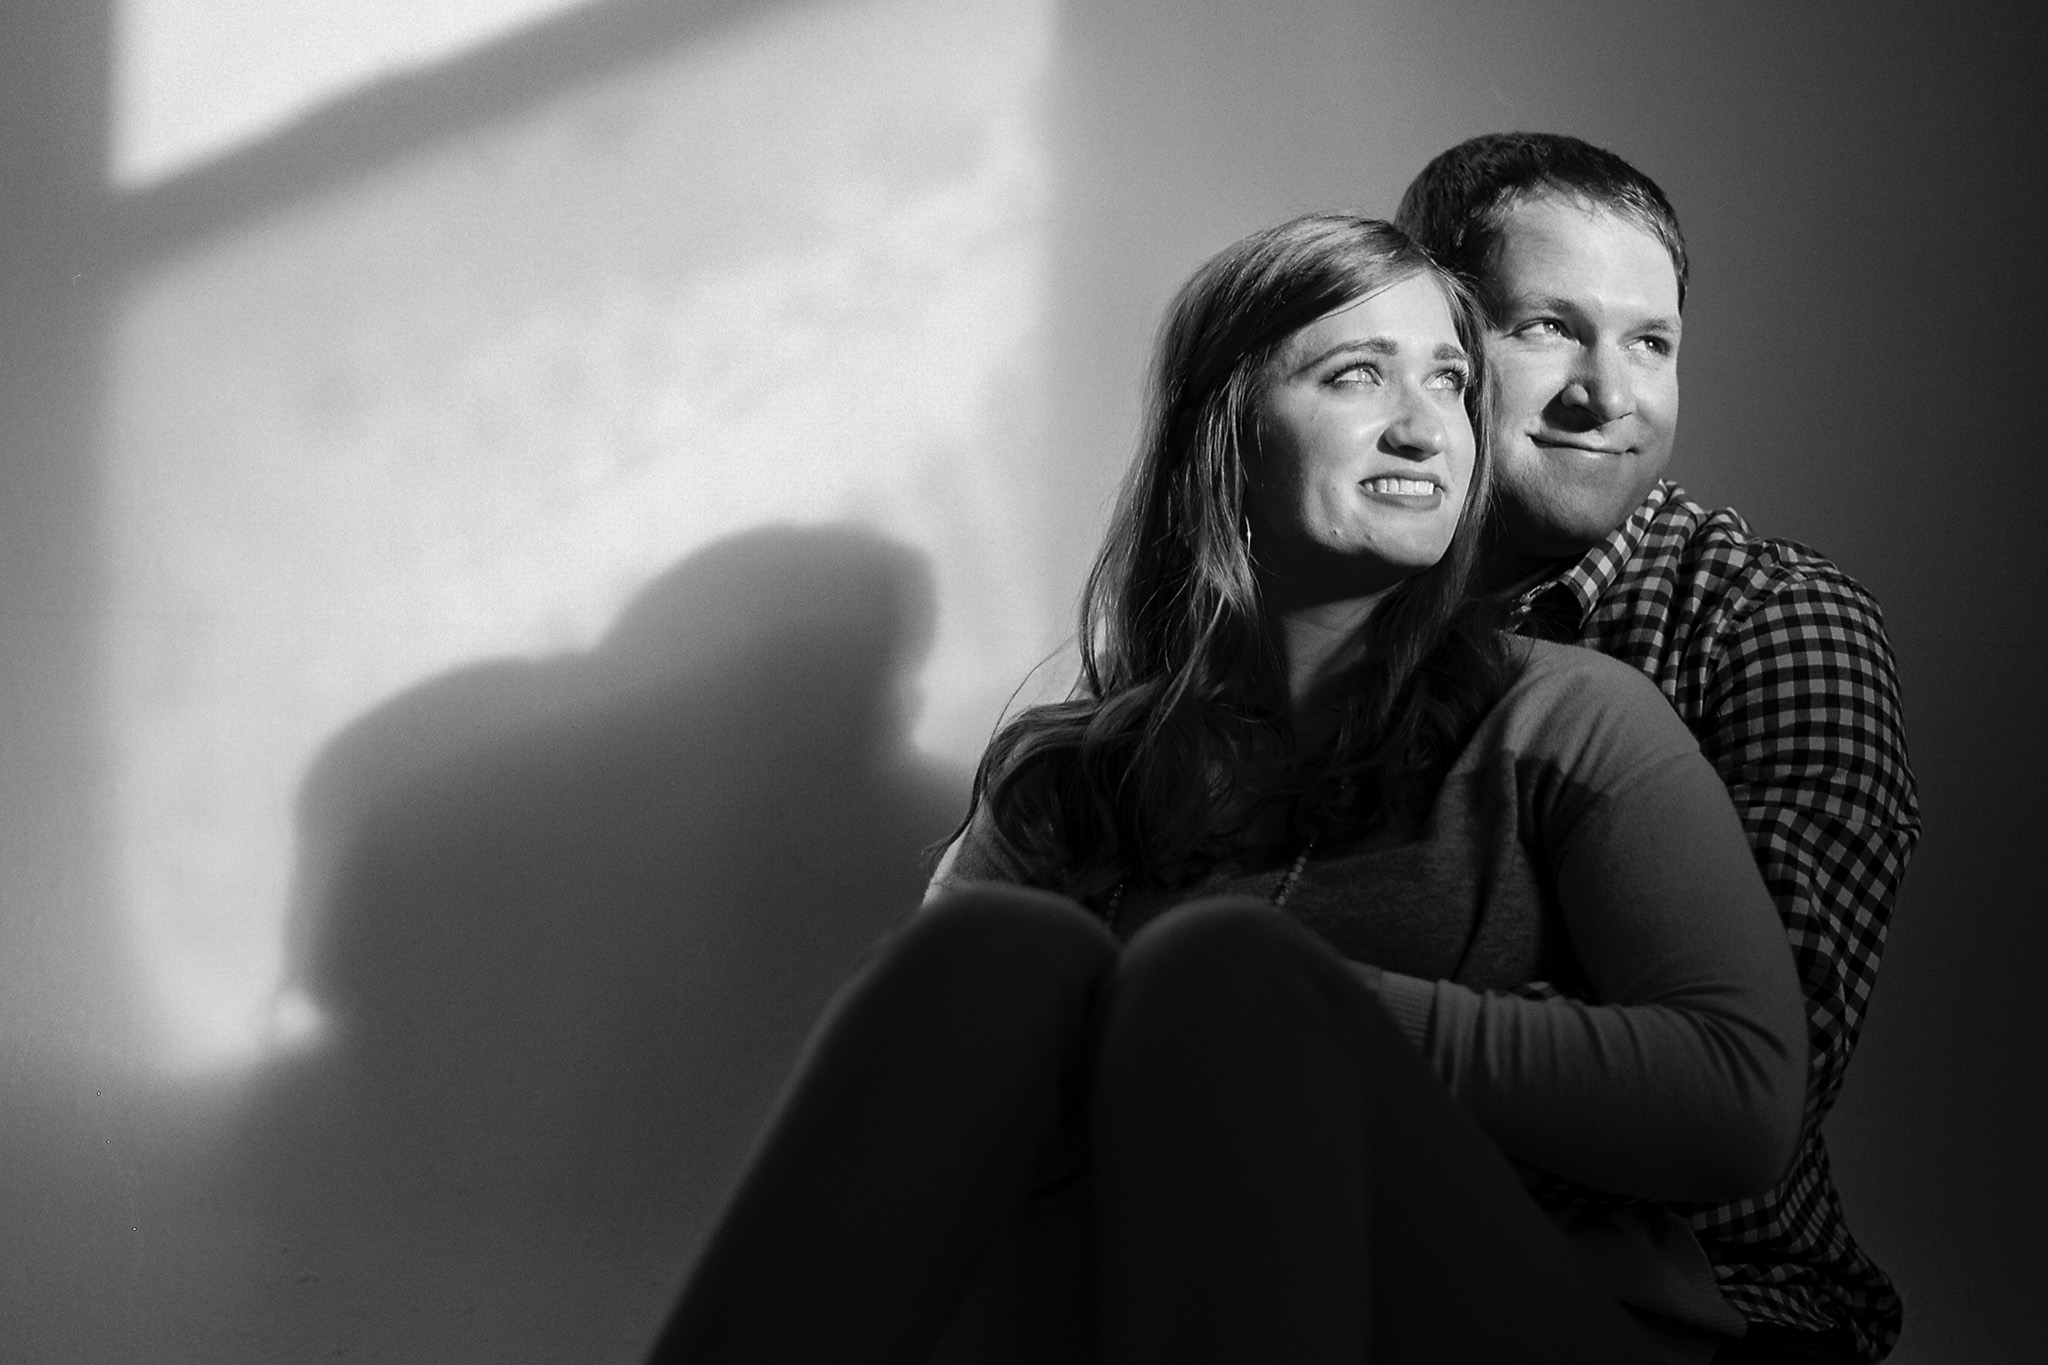 Dark and moody film engagment photography - Amber and Ethan-07.jpg